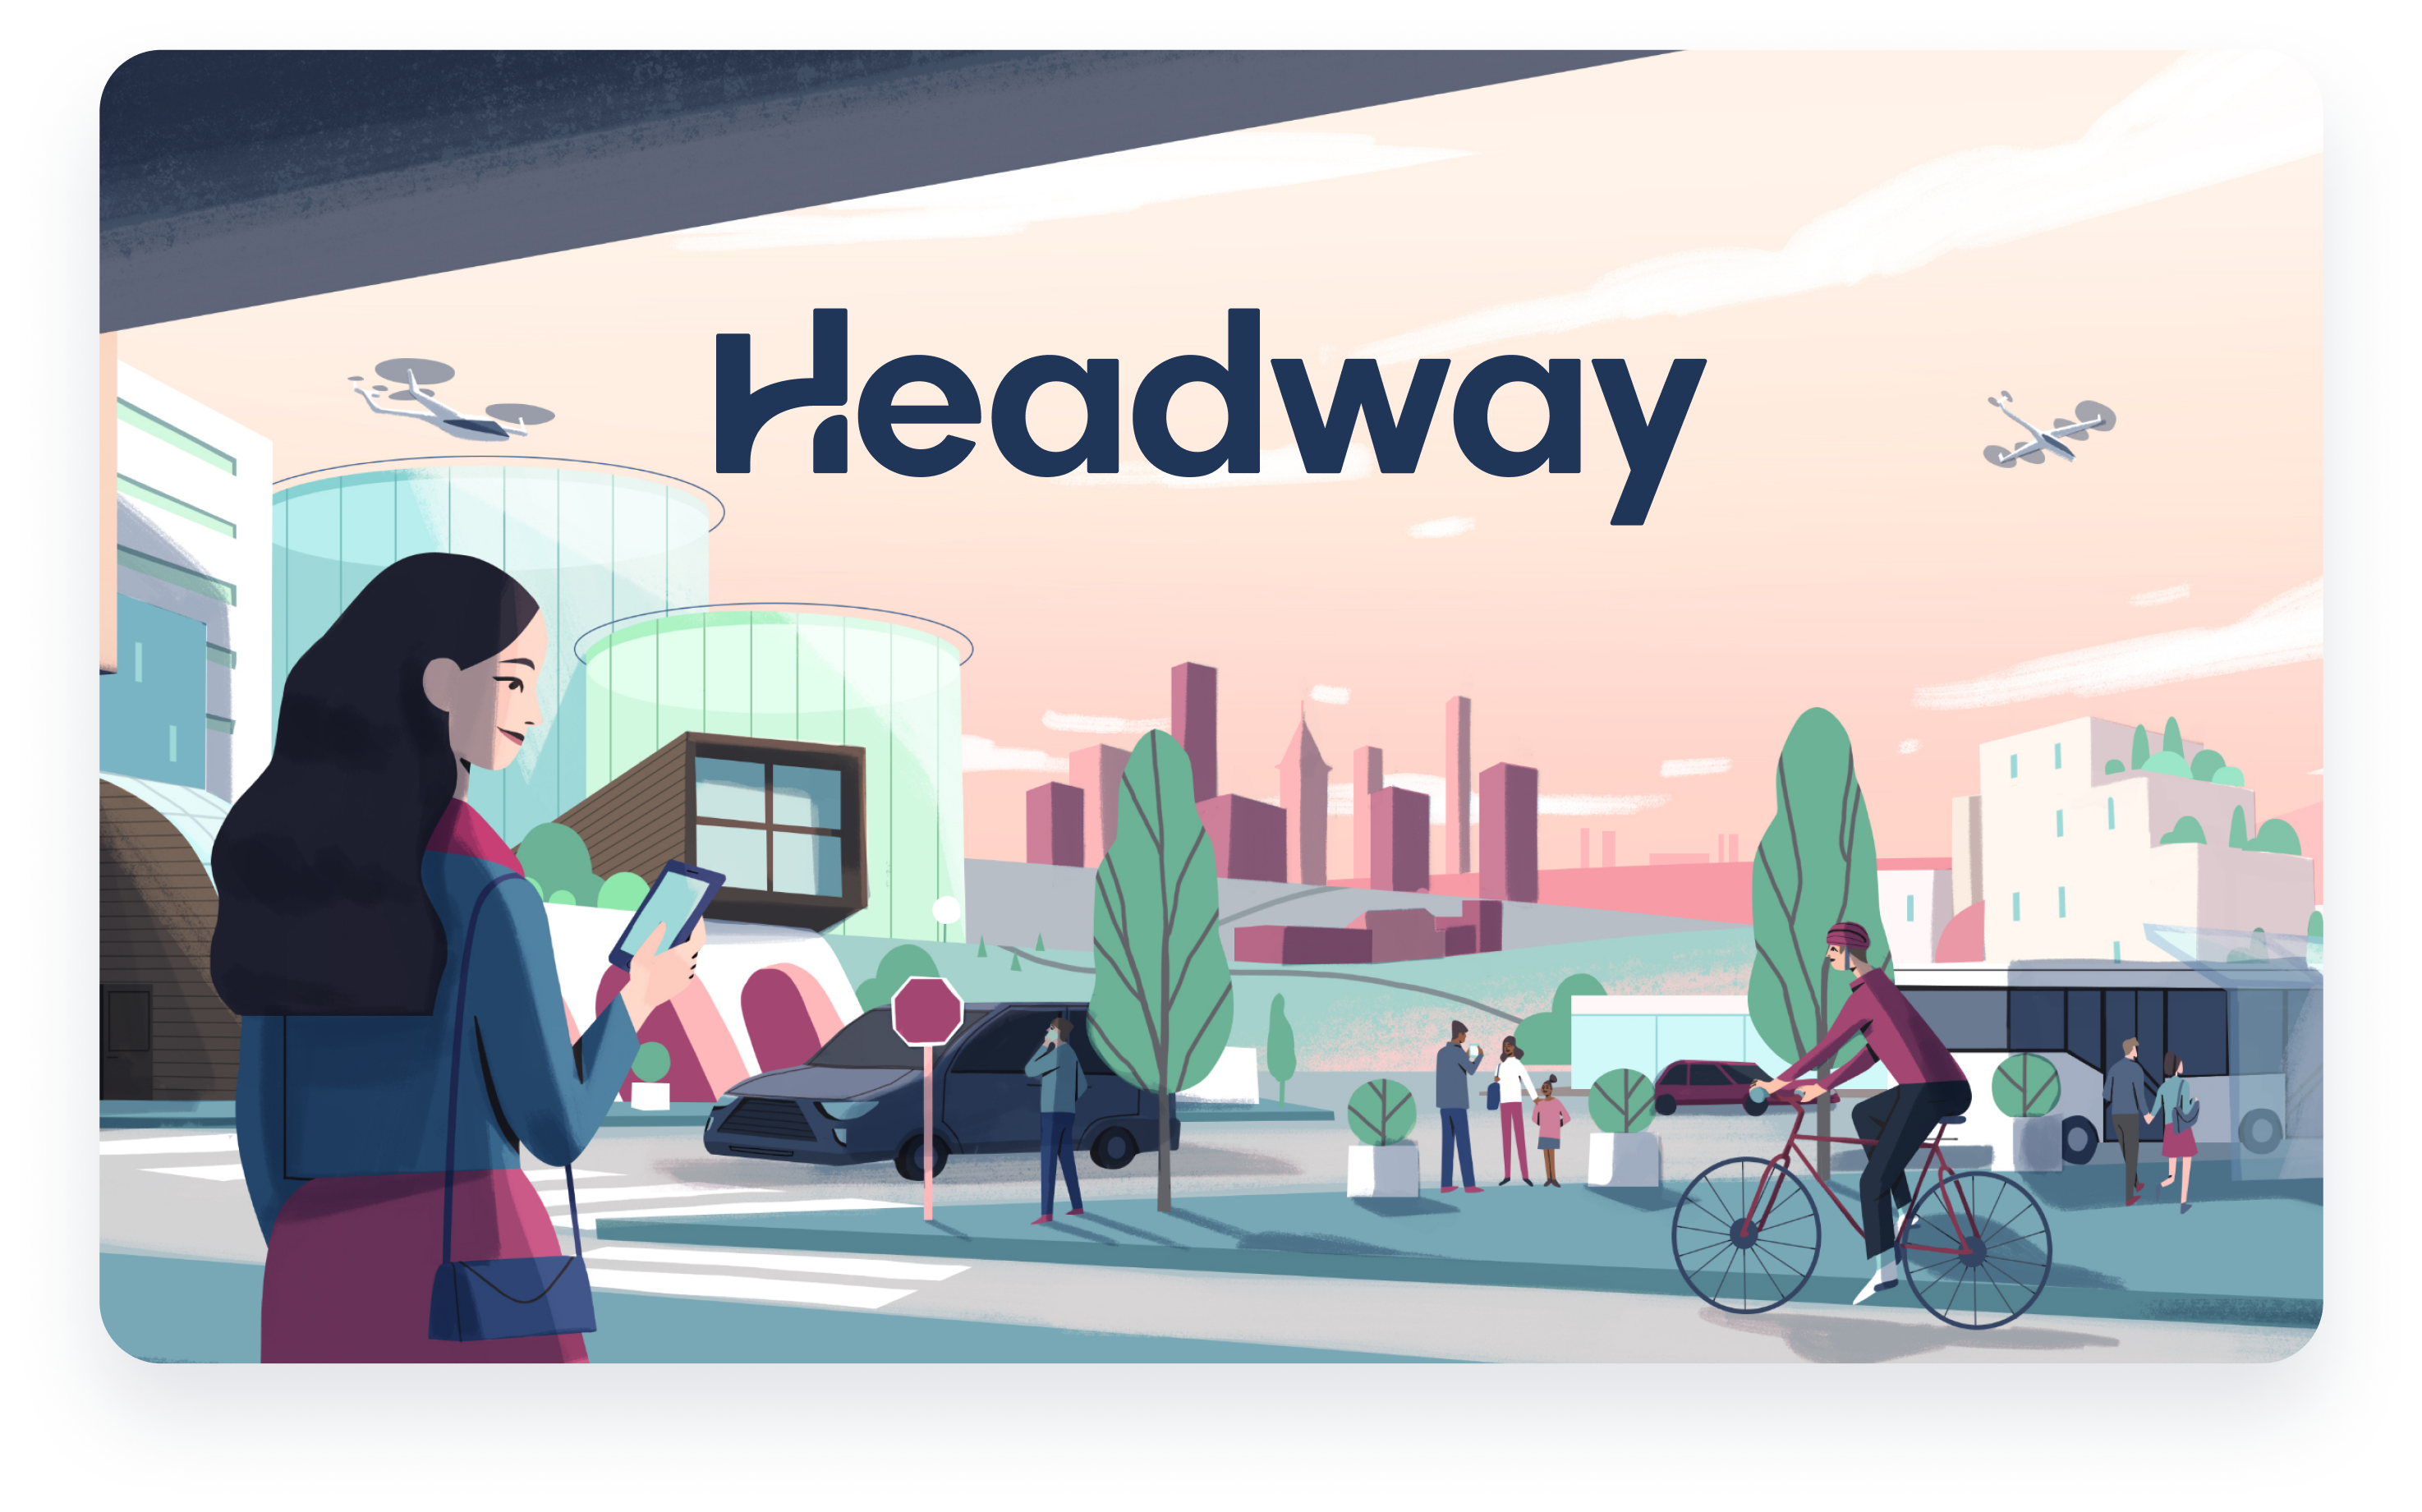 Headway logo over illustration of women in a future rendering.